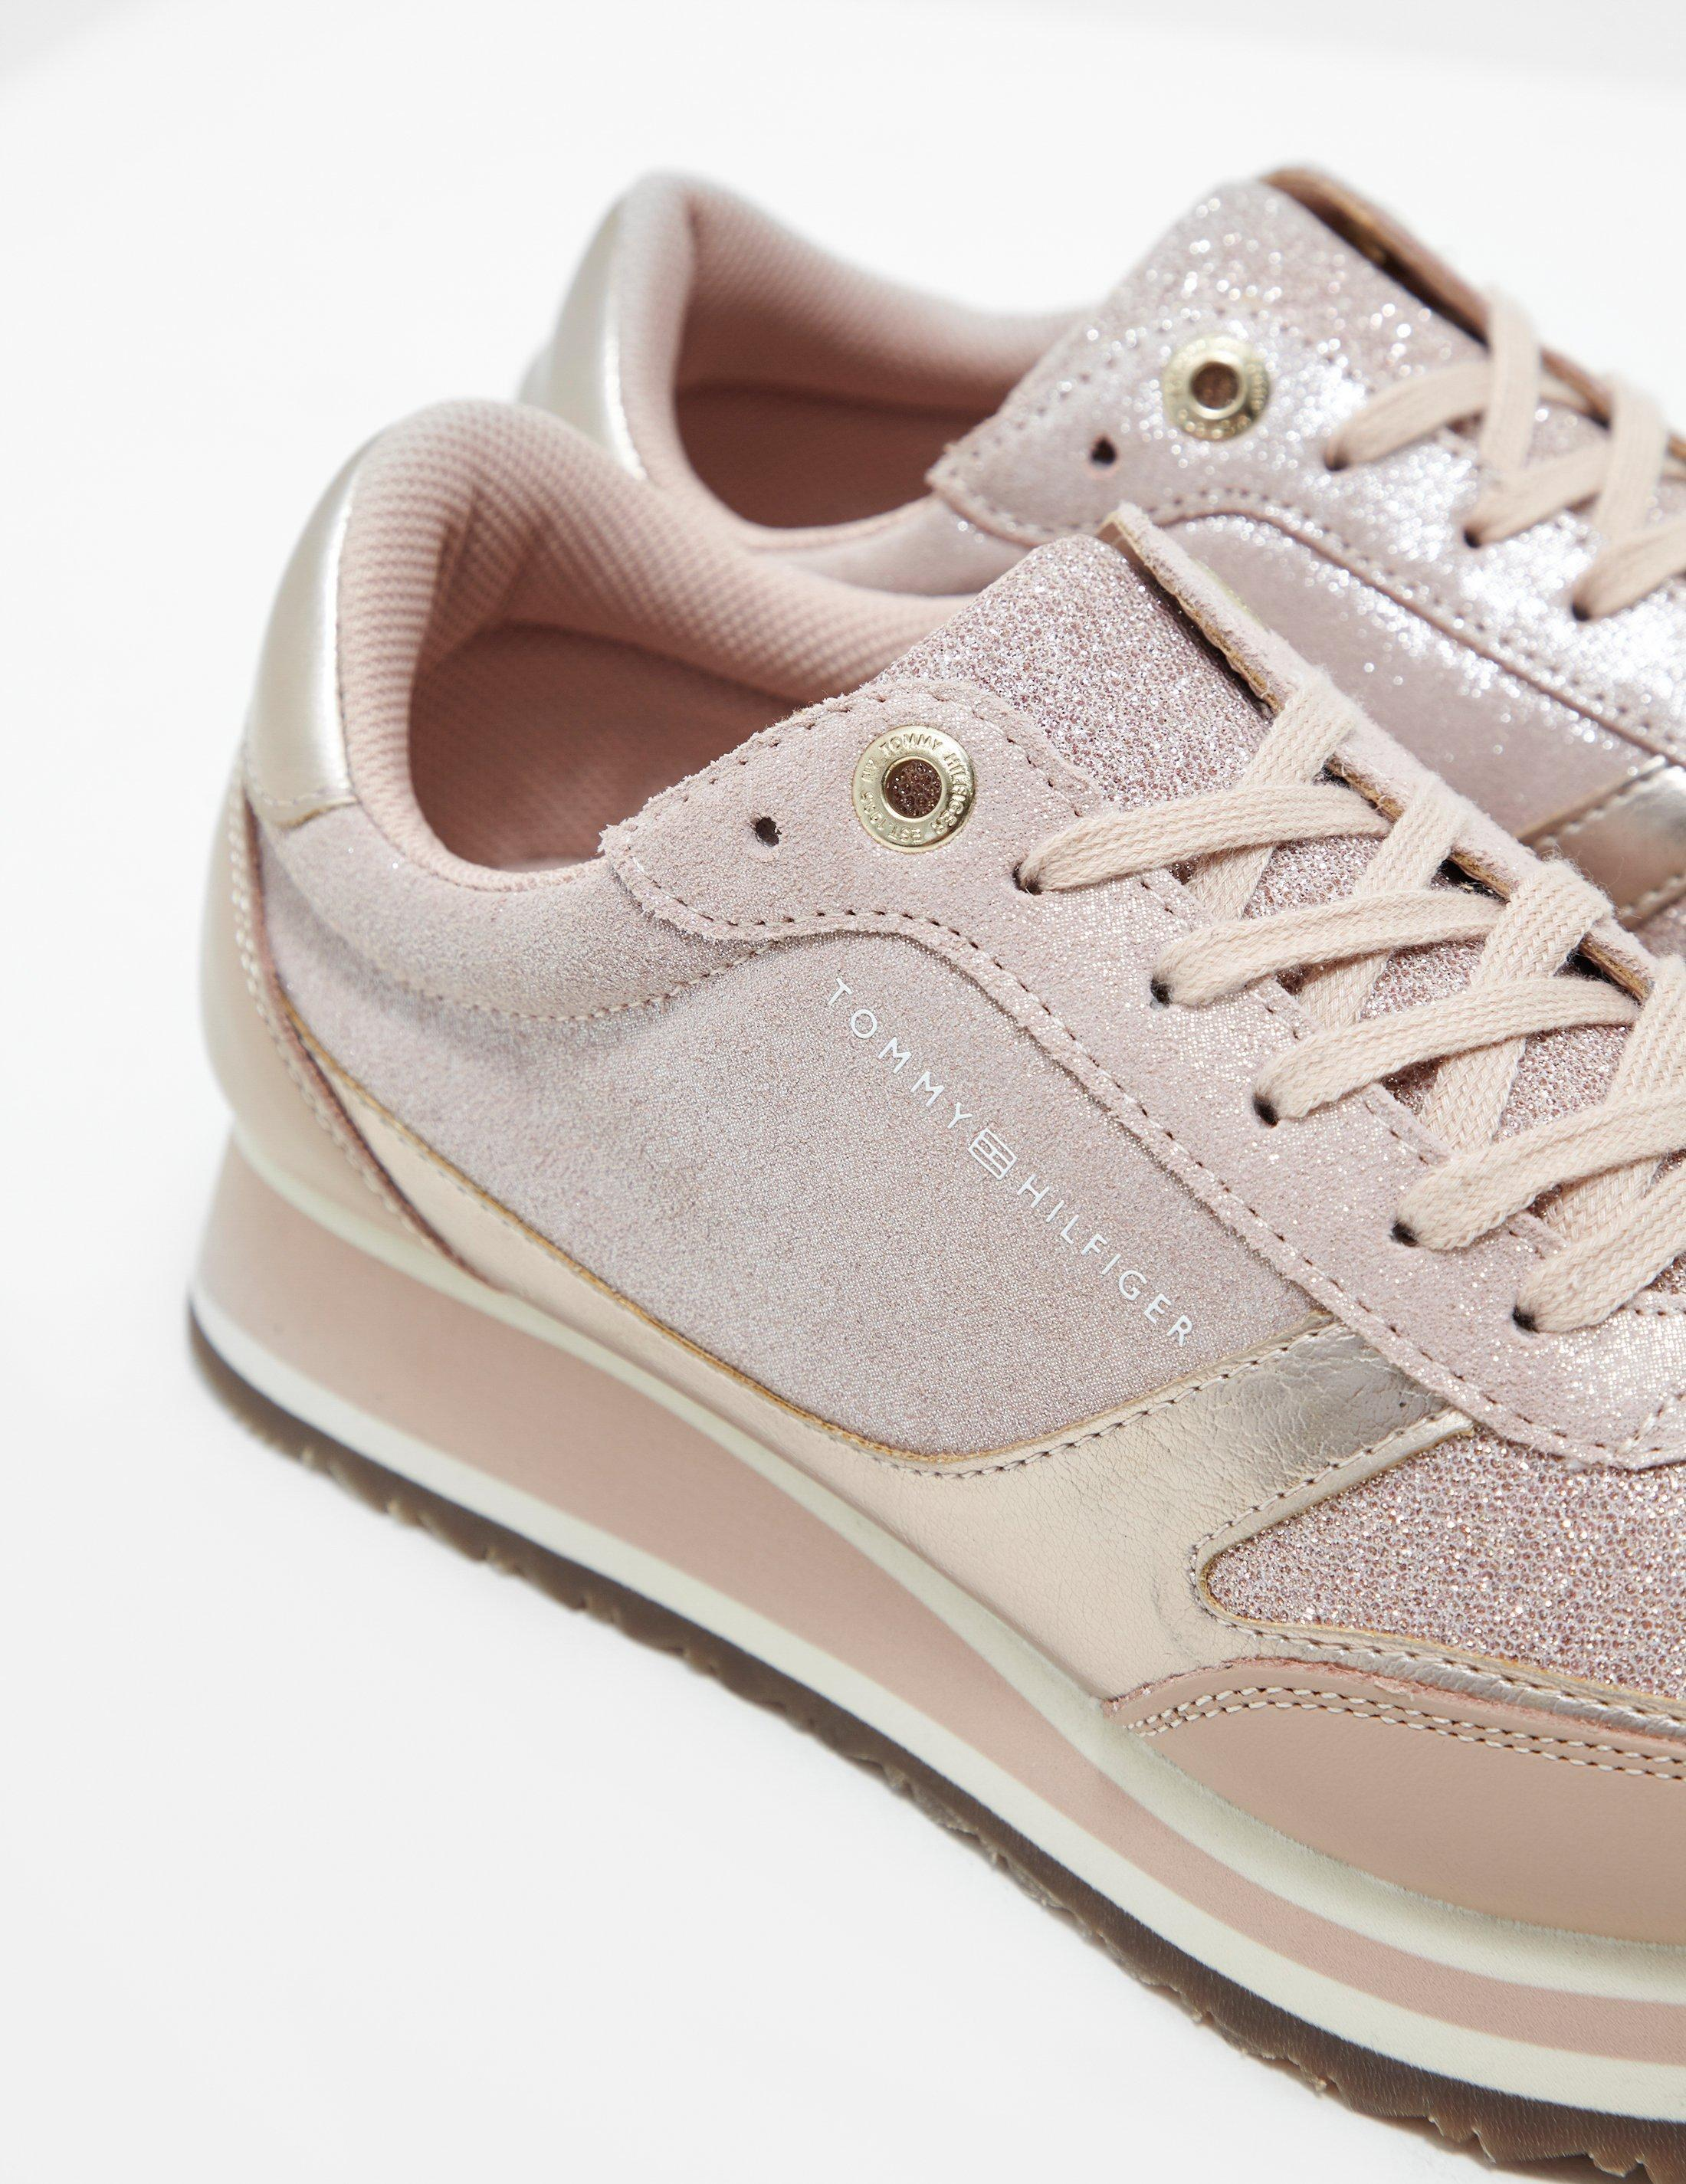 3720534ad Lyst - Tommy Hilfiger Metallic Retro Trainers Pink in Pink